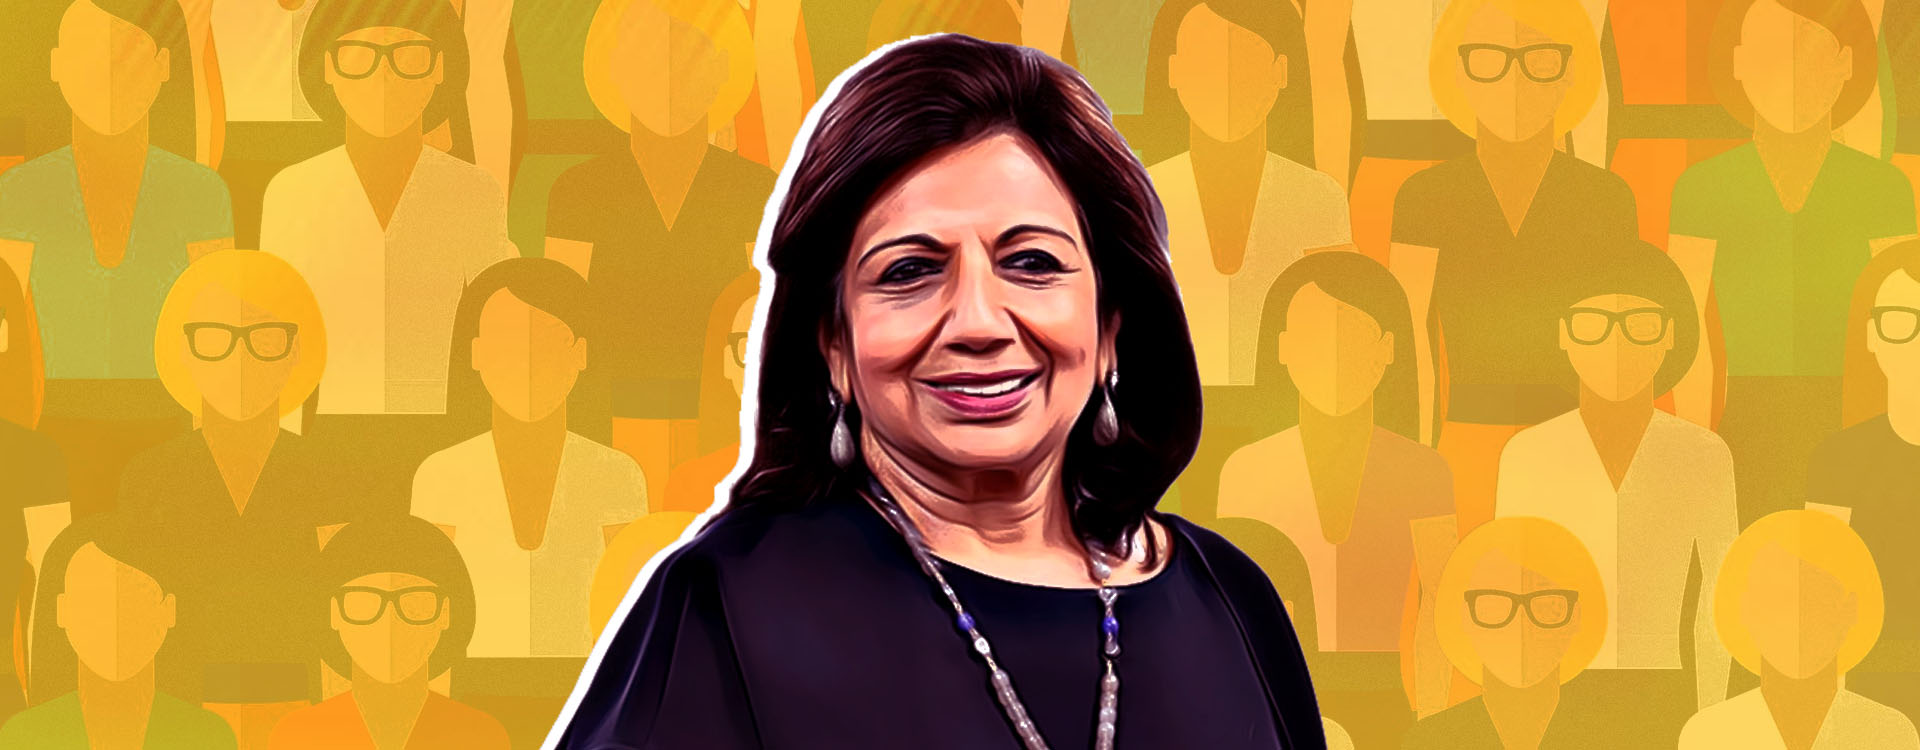 Kiran Mazumdar-Shaw Richest Woman In India and Founder of Biocon Limited